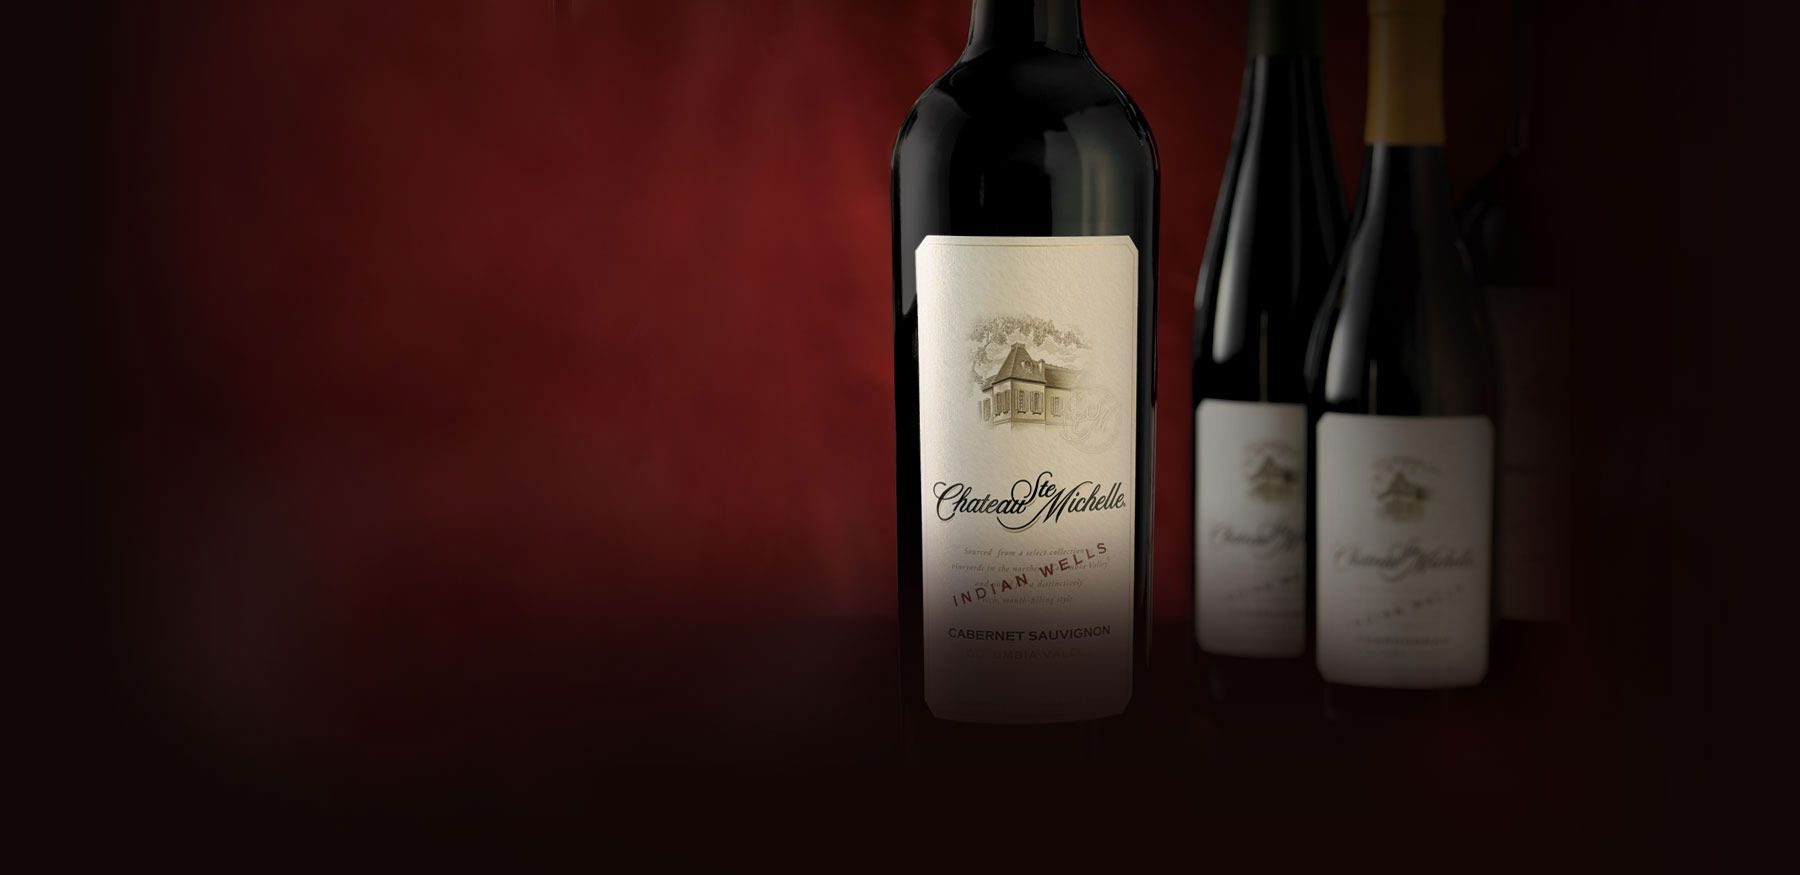 Indian Wells Wine Collections Chateau Ste Michelle Wine Collection Wines Wine